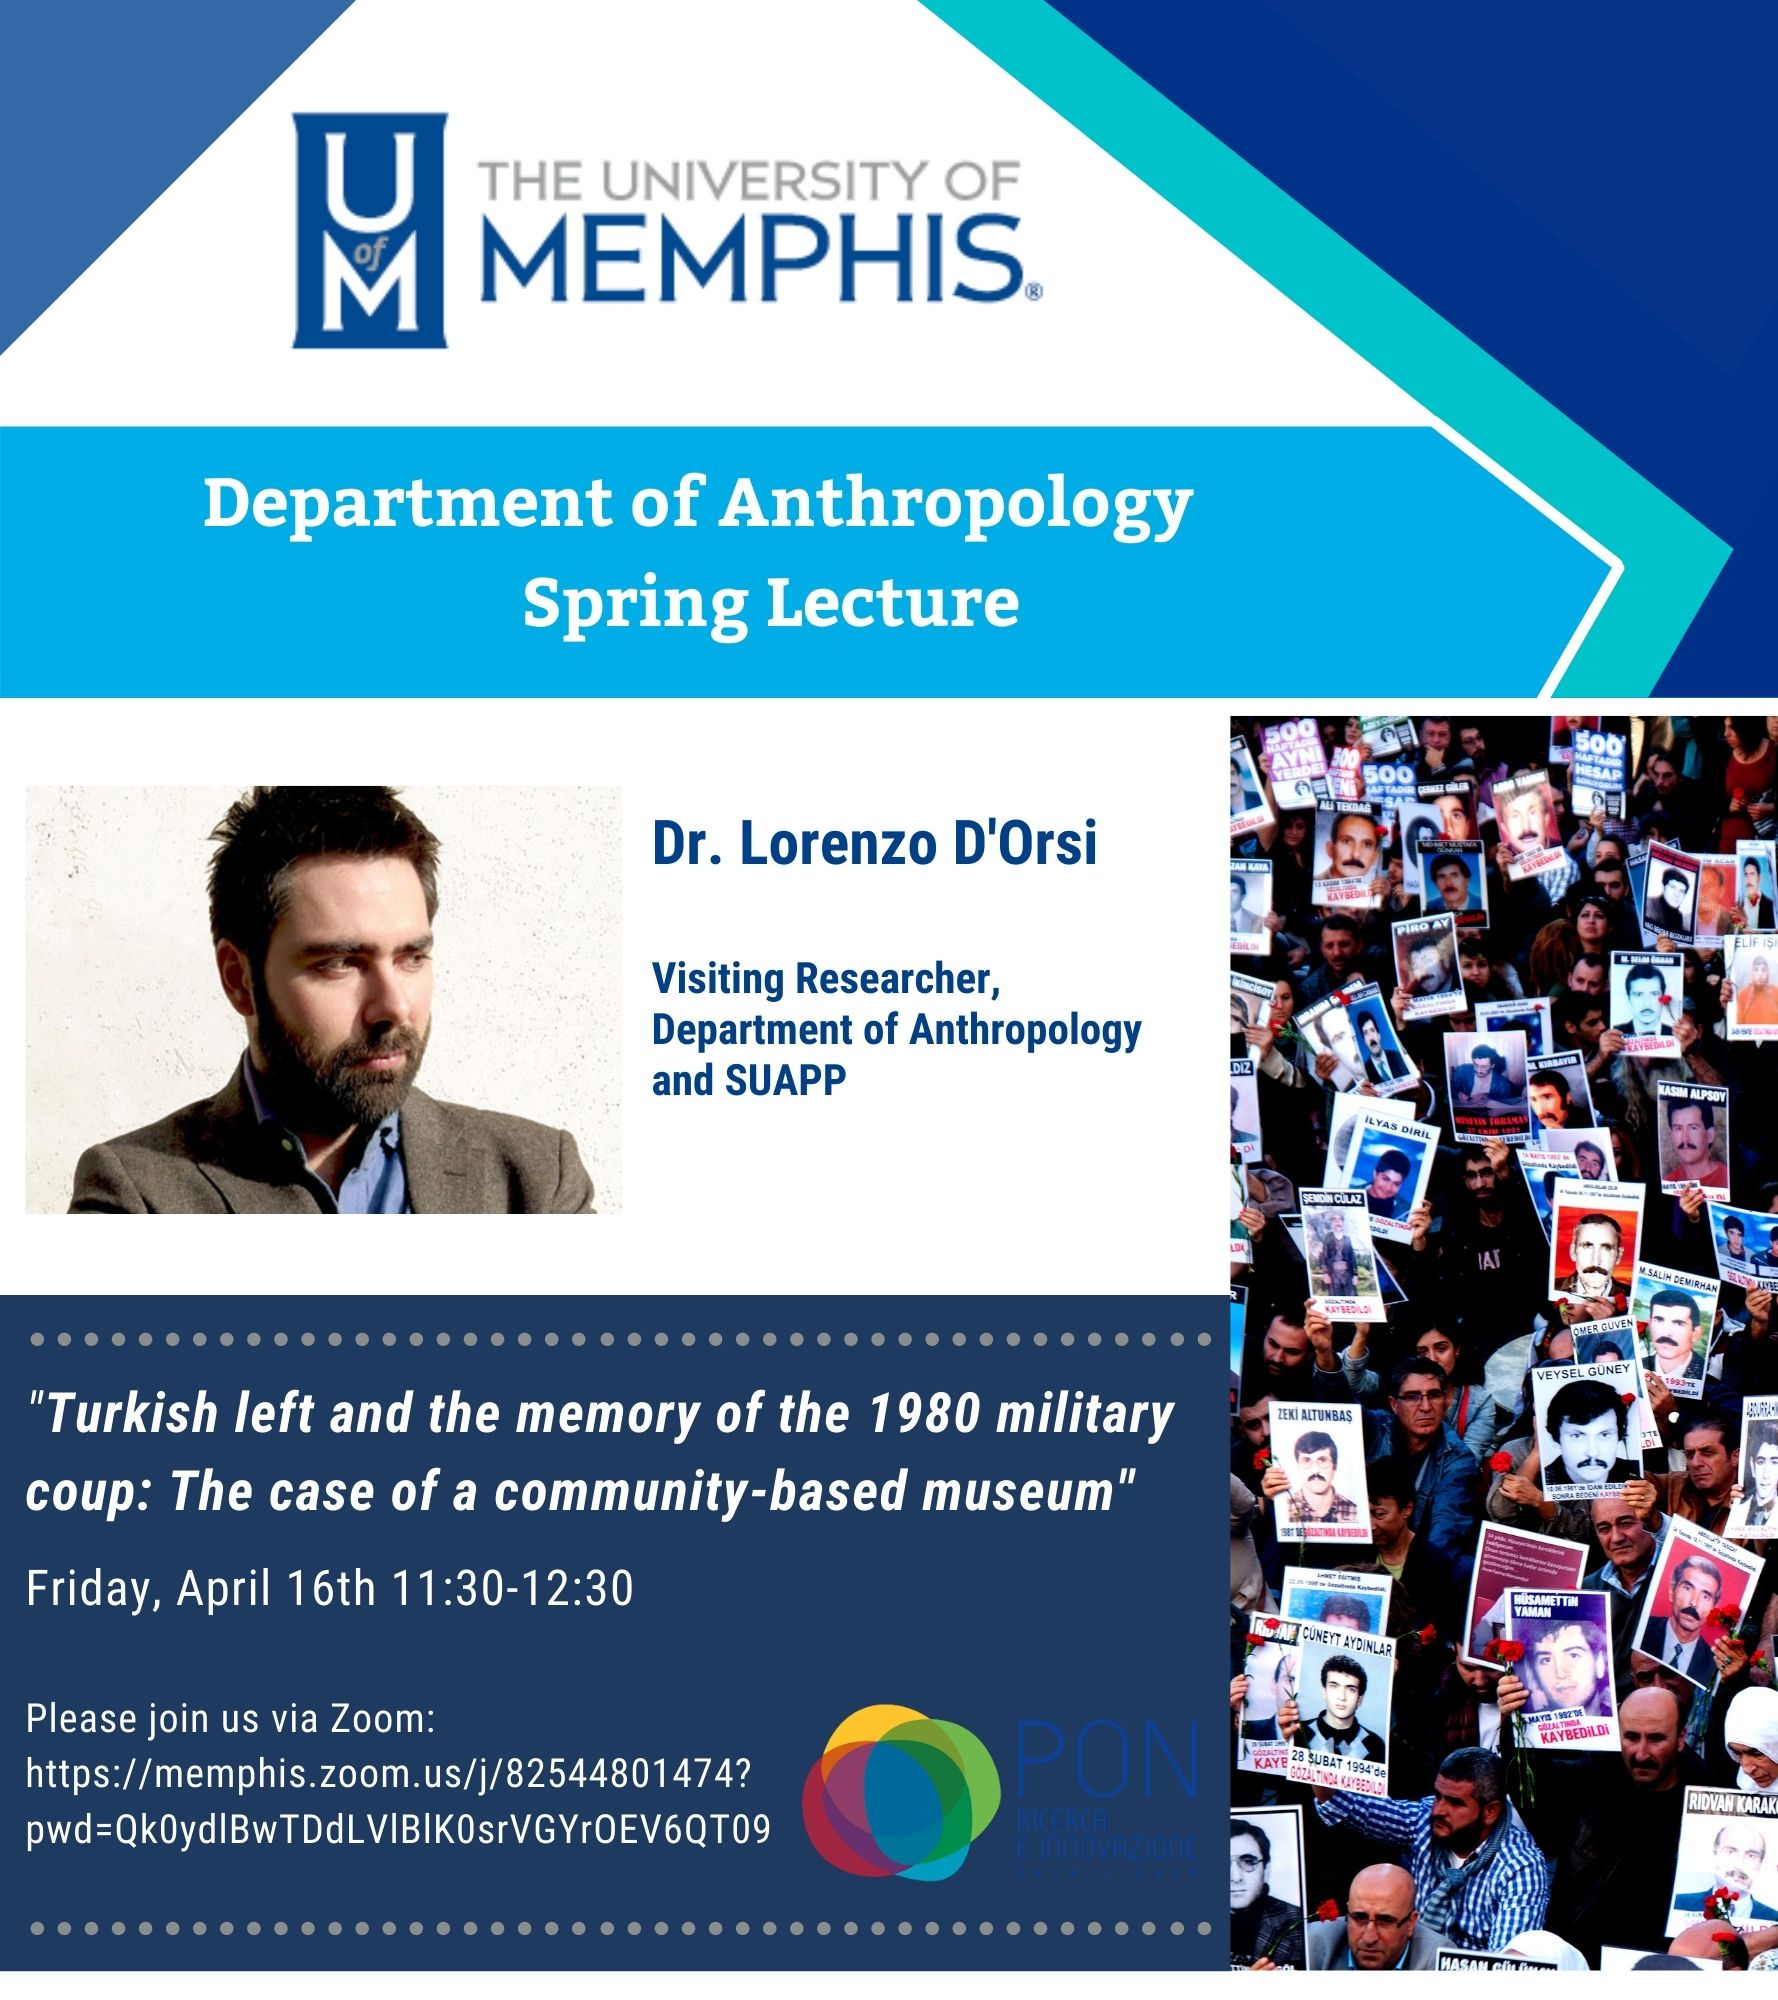 Spring Lecture Flyer (picture of Dr. D'Orsi, same text as description on this page)